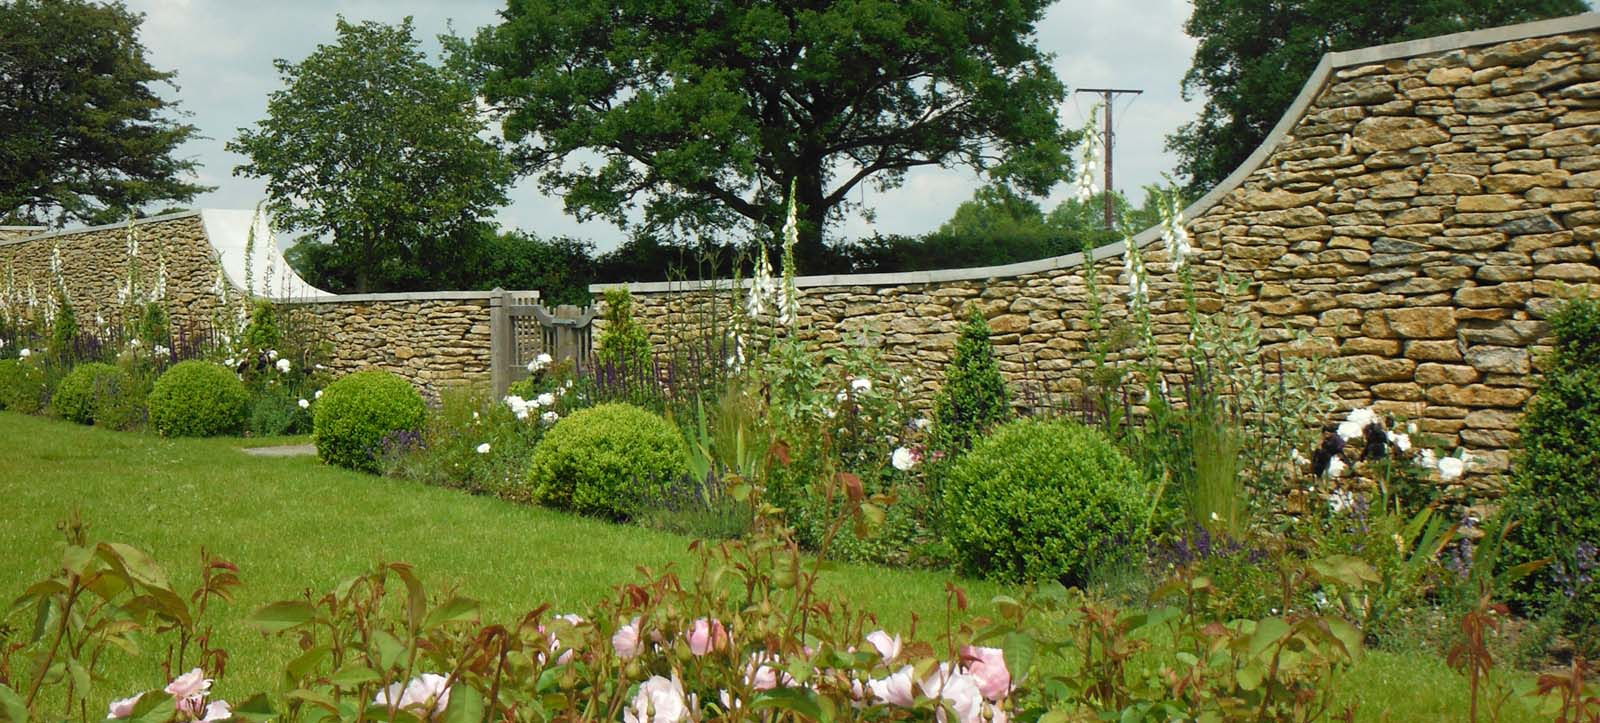 Gated Drystone